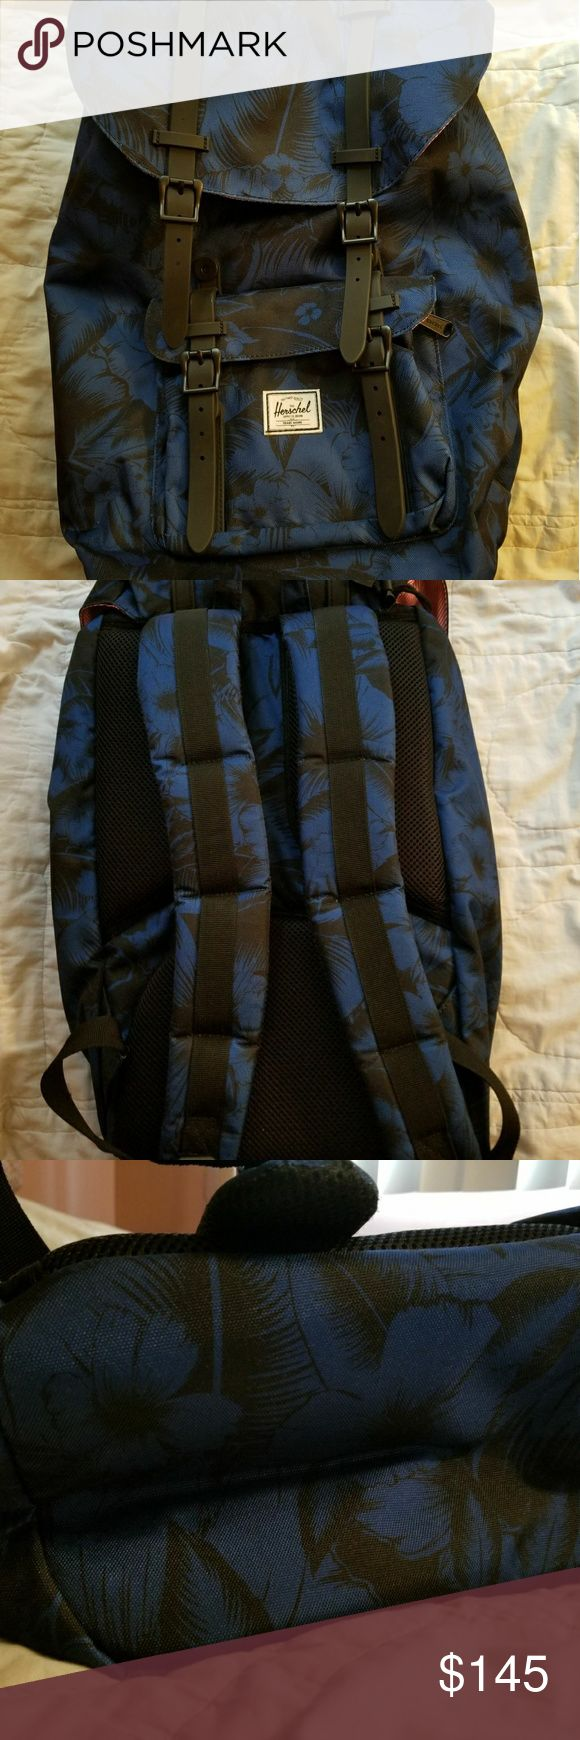 """Brand New Herschel Little America Blue Floral Back Herschel Supply Company - """"little America"""" style  - brand new (no tags) - blue and black exterior - red and white interior Herschel Supply Company Bags Backpacks"""